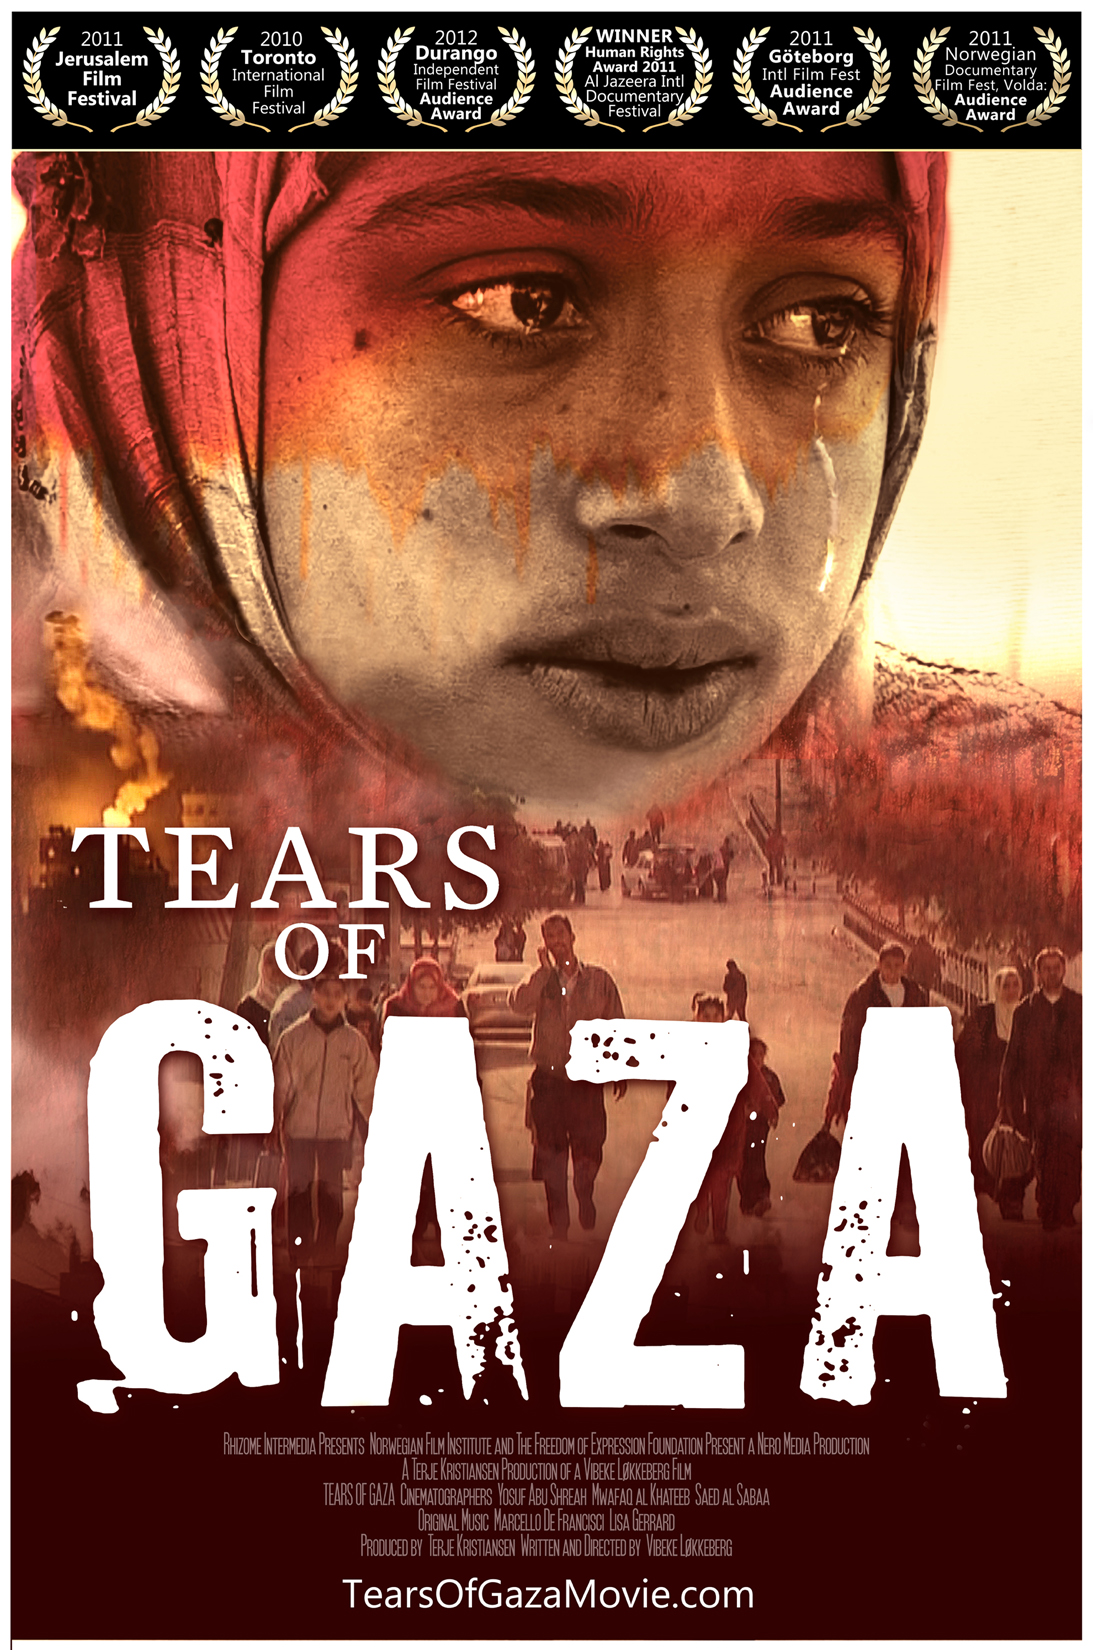 tears-of-gaza-poster-artwork-8x10